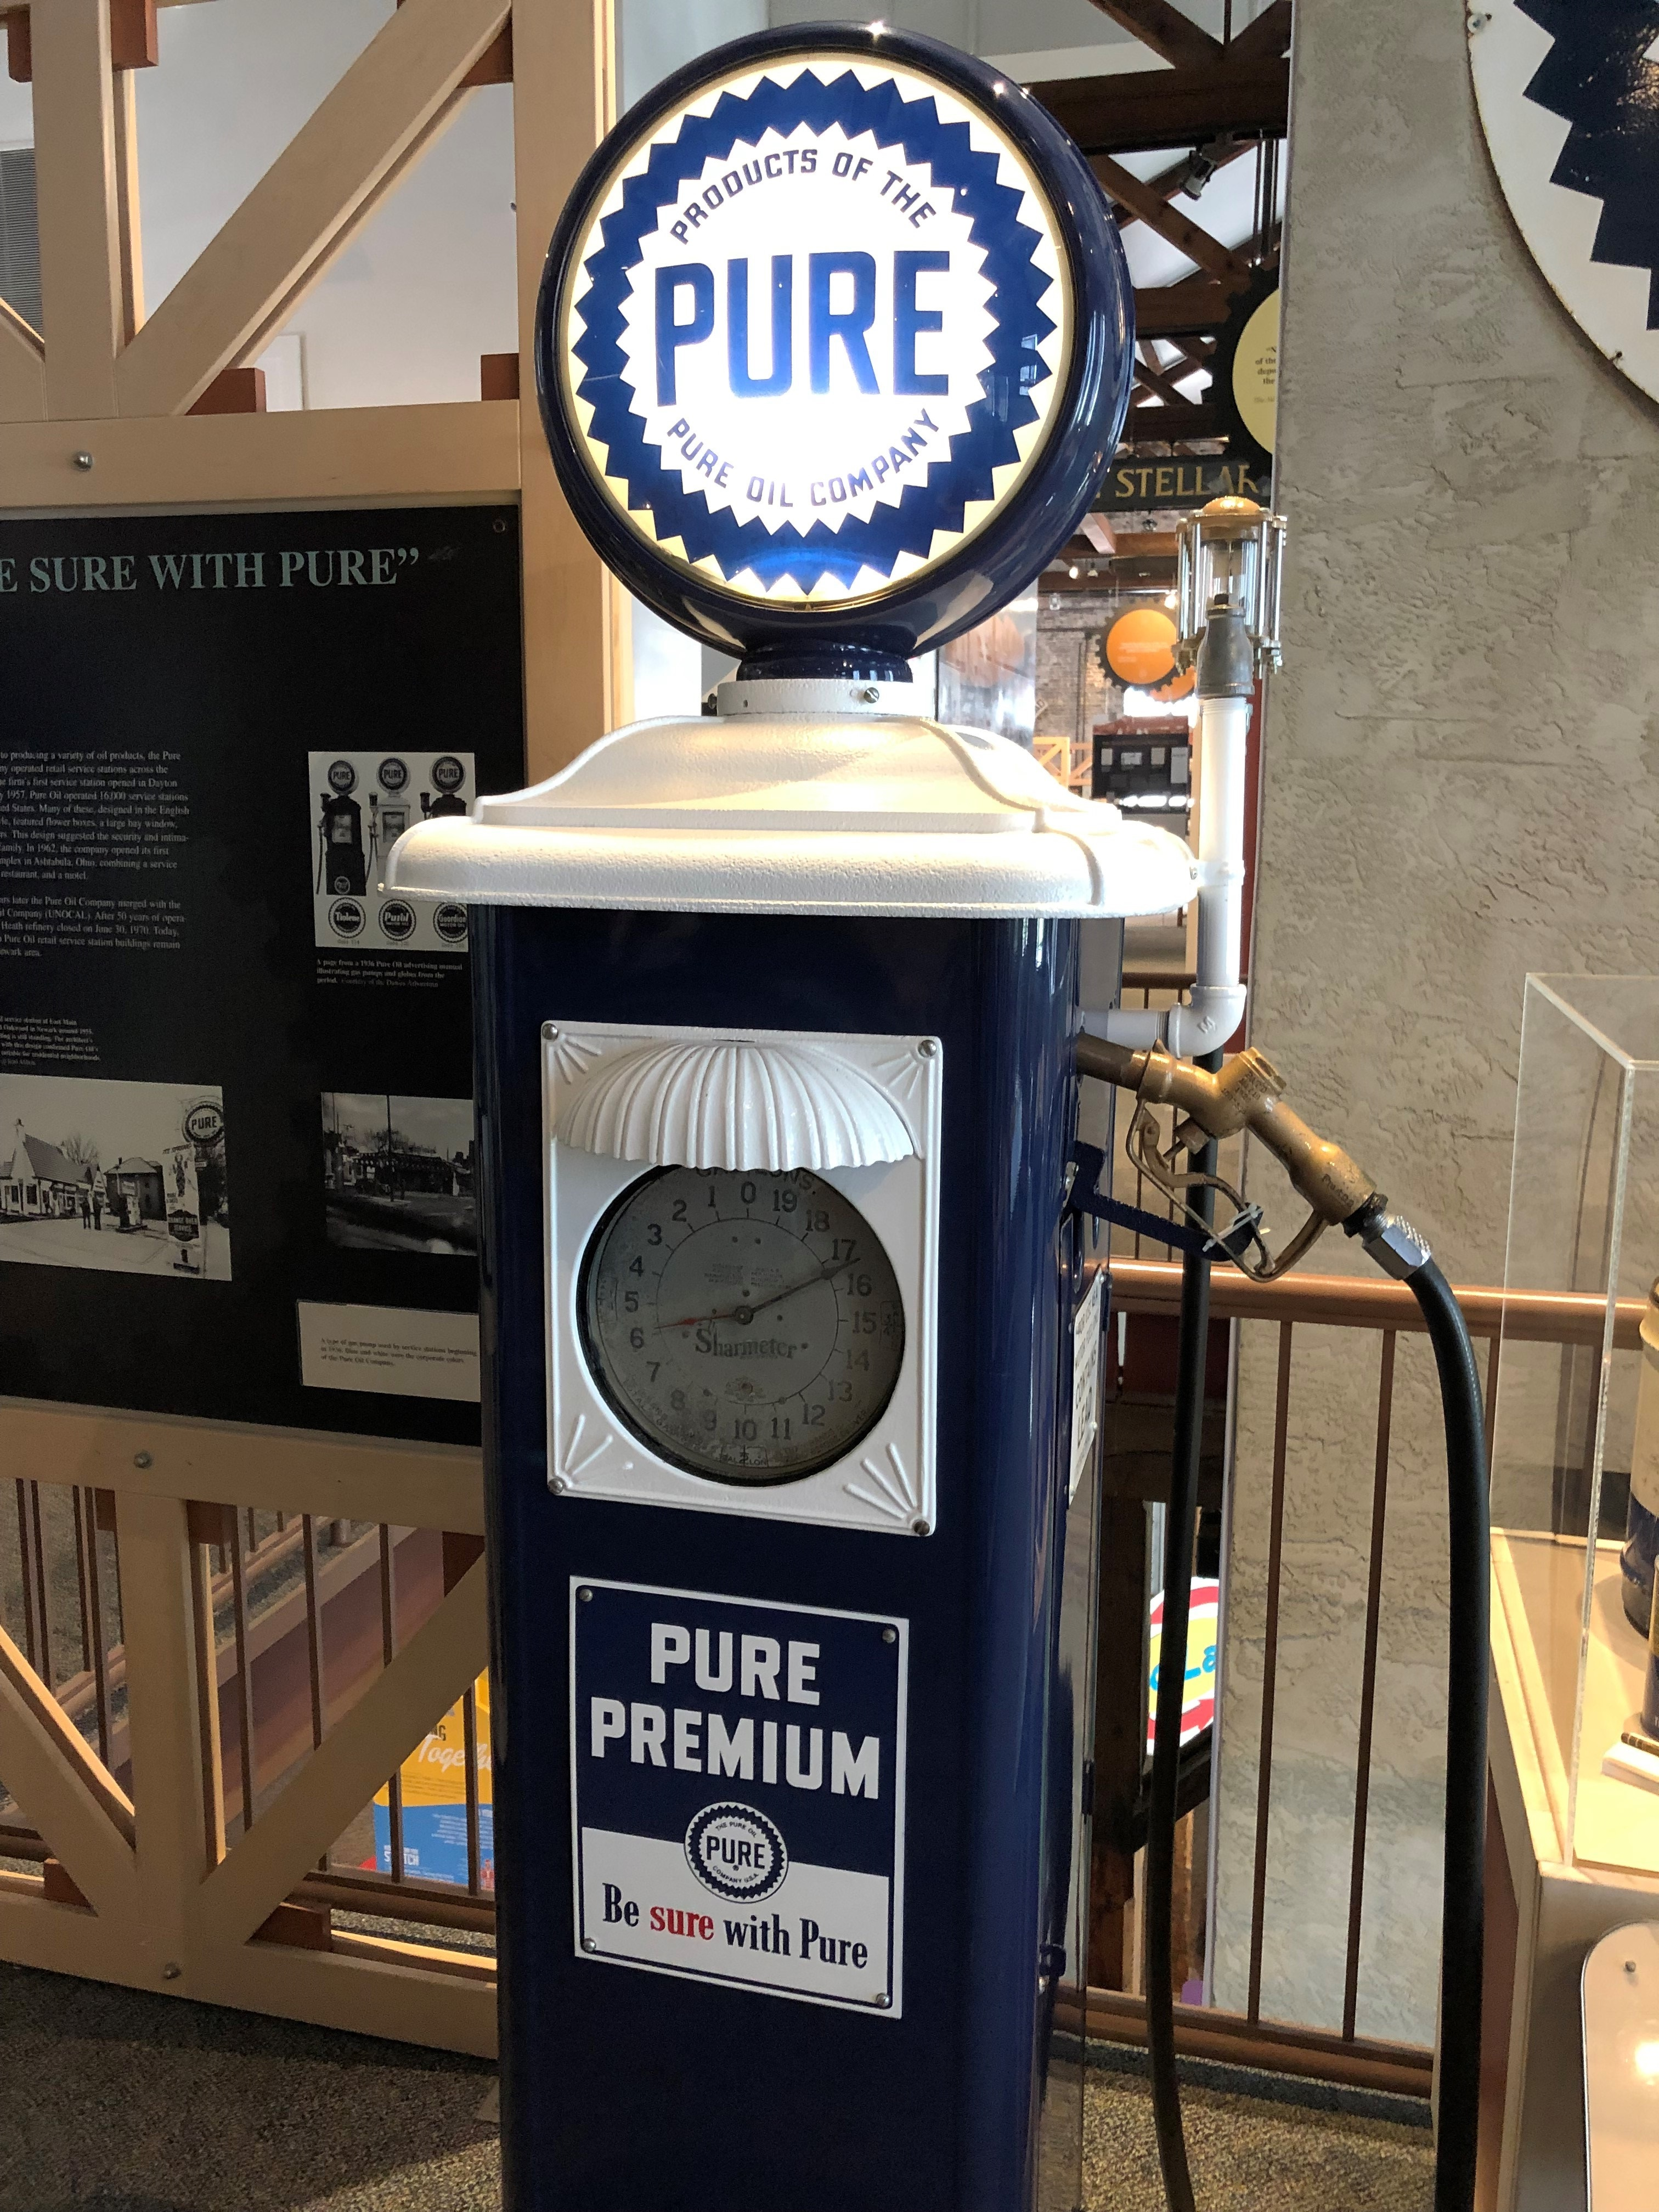 This style of gas pump was used by service stations beginning in 1936. The blue and white colors make it easily recognizable as a Pure pump.